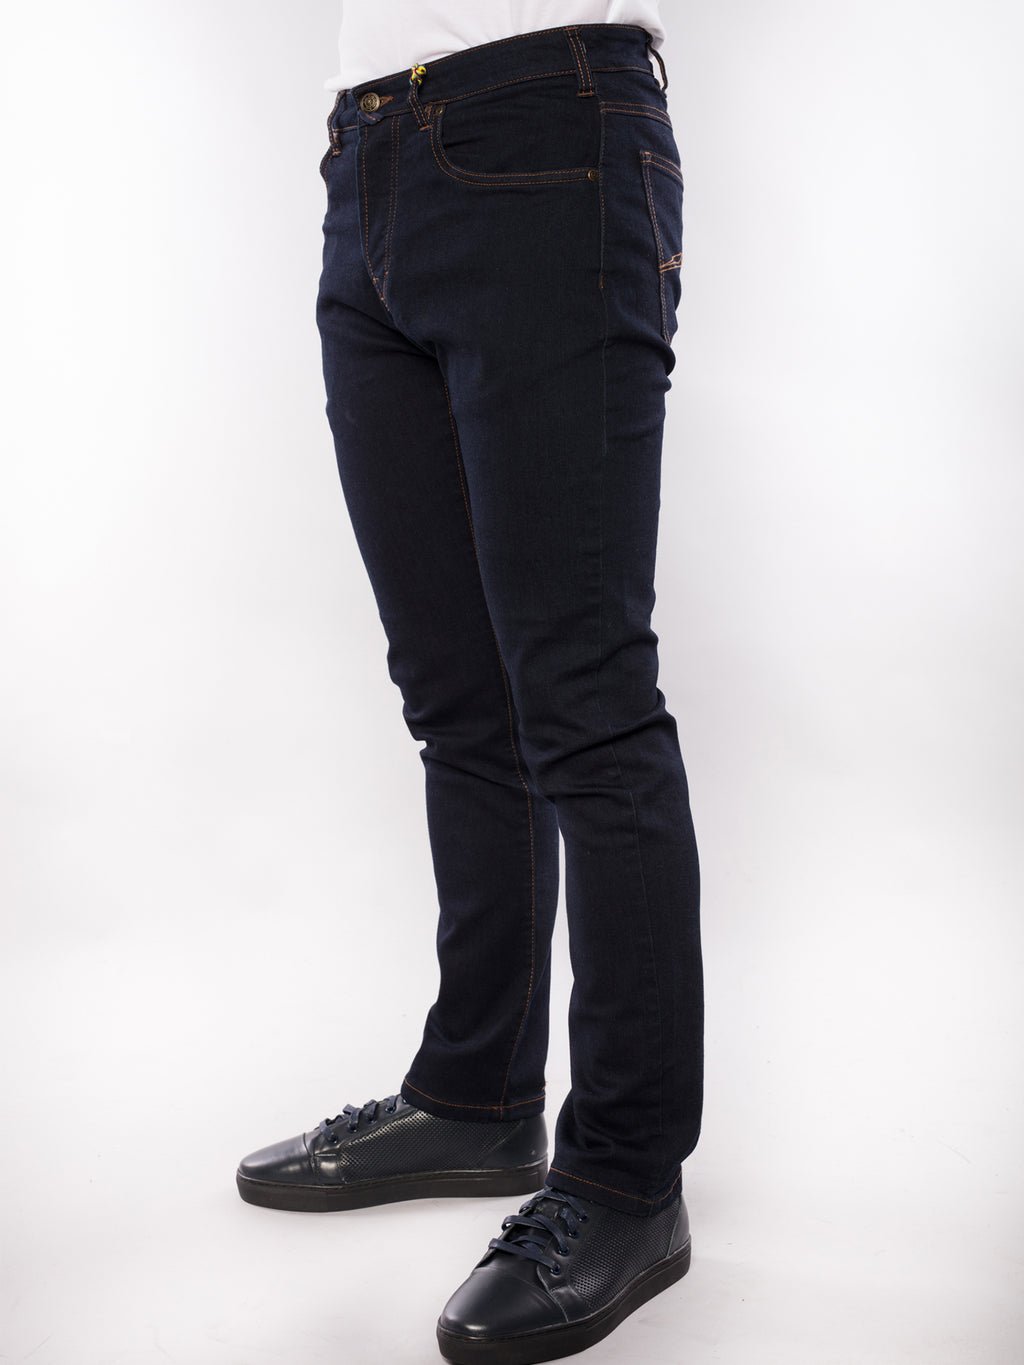 dark navy herbie frogg jean